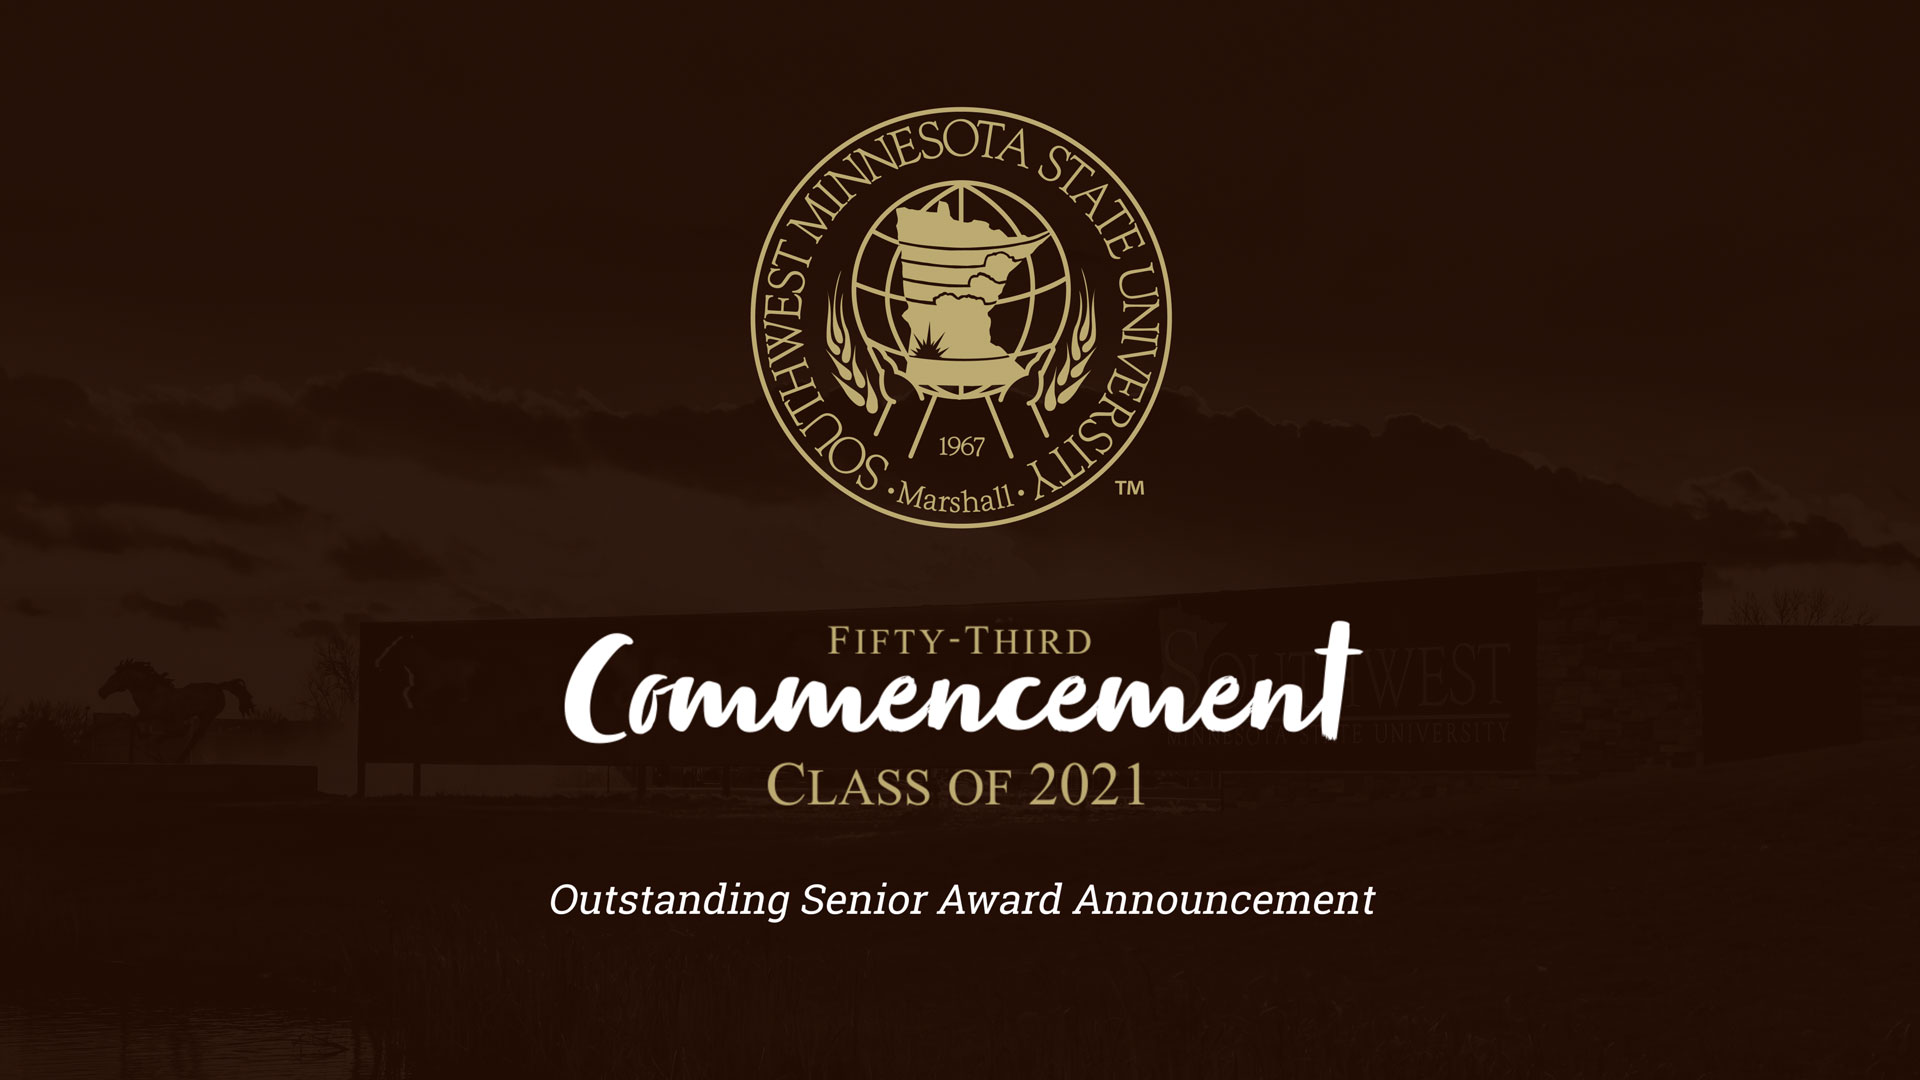 2021 SMSU Outstanding Senior Award Announcement